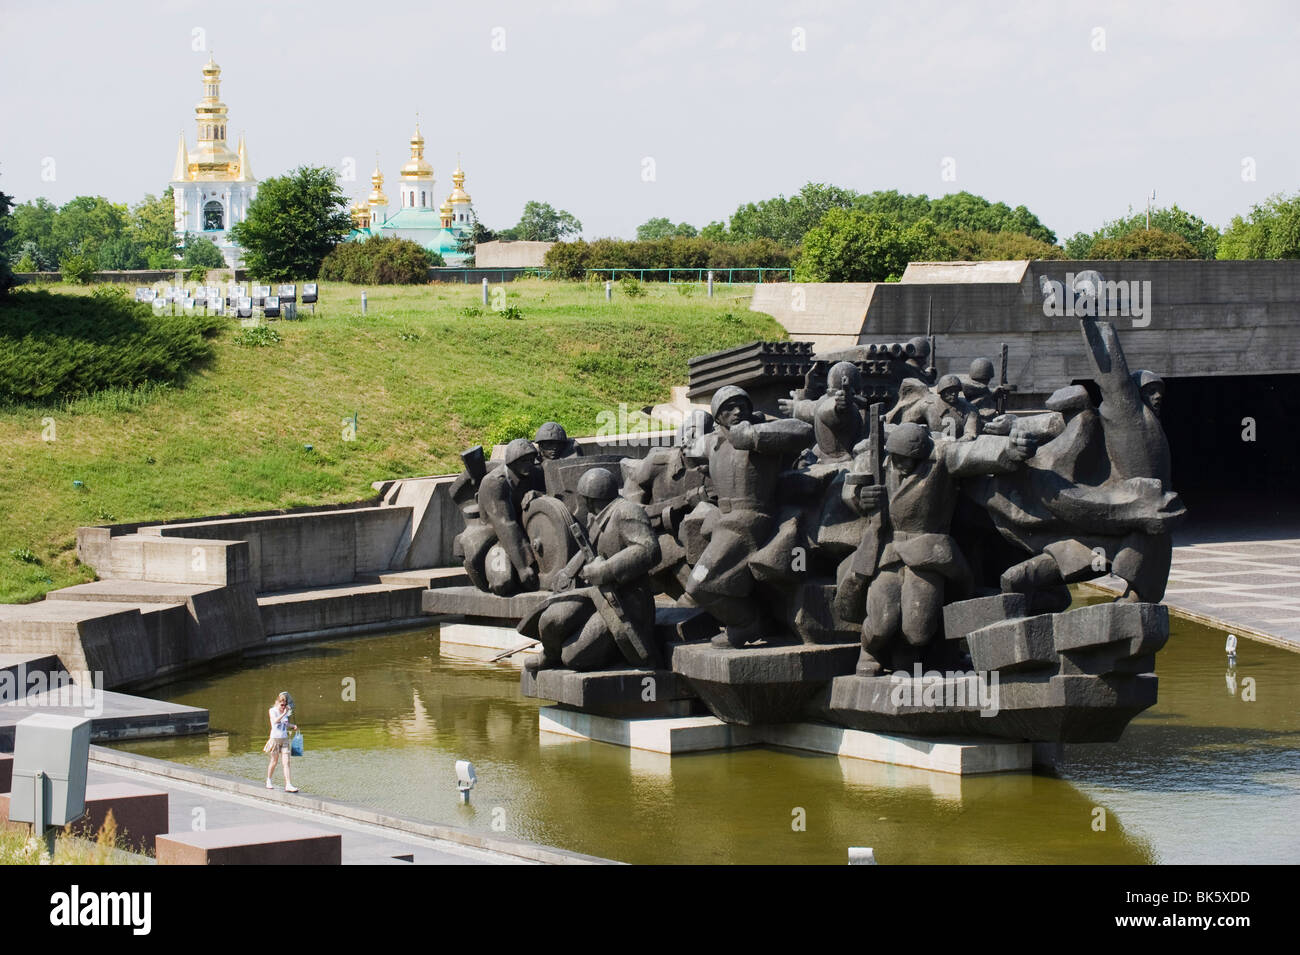 Memorial statue at the Museum of the Great Patriotic War,  The Lavra church behind, Kiev, Ukraine, Europe - Stock Image